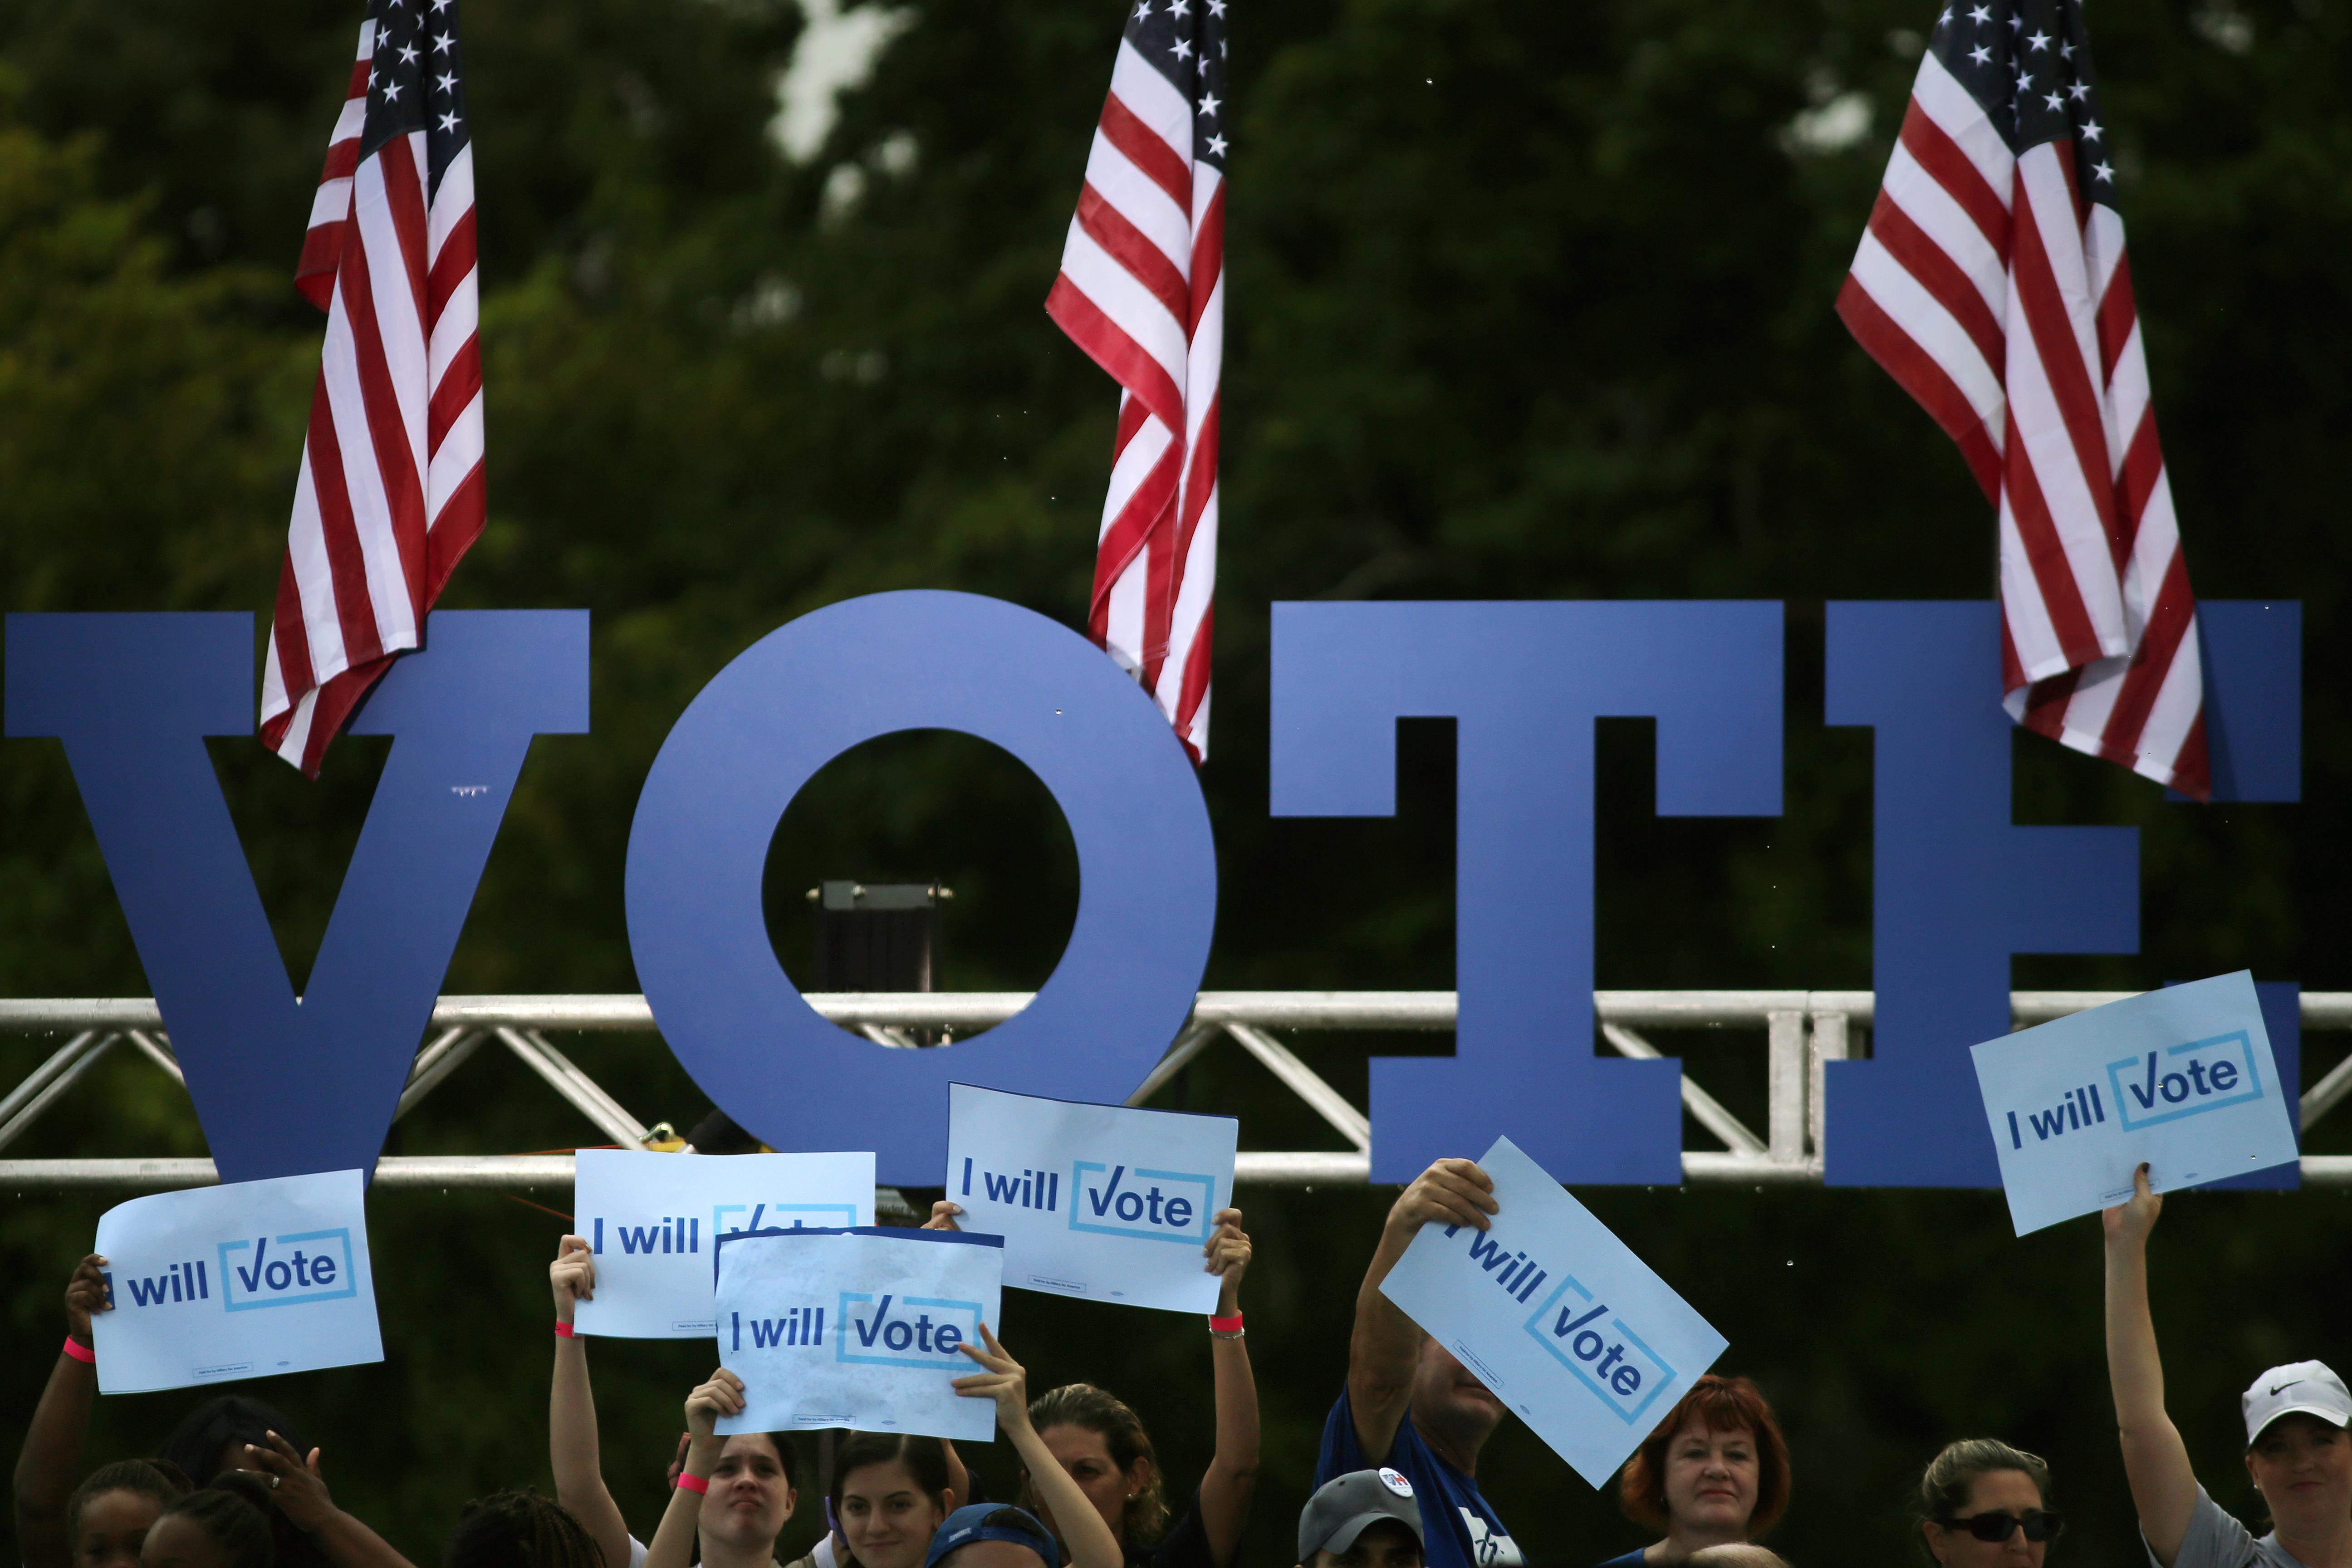 Supporters hold campaign signs as they wait for the arrival of U.S. Democratic presidential nominee Hillary Clinton during a rally in Pembroke Pines, Florida U.S., November 5, 2016. REUTERS/Carlos Barria - RTX2S2N9